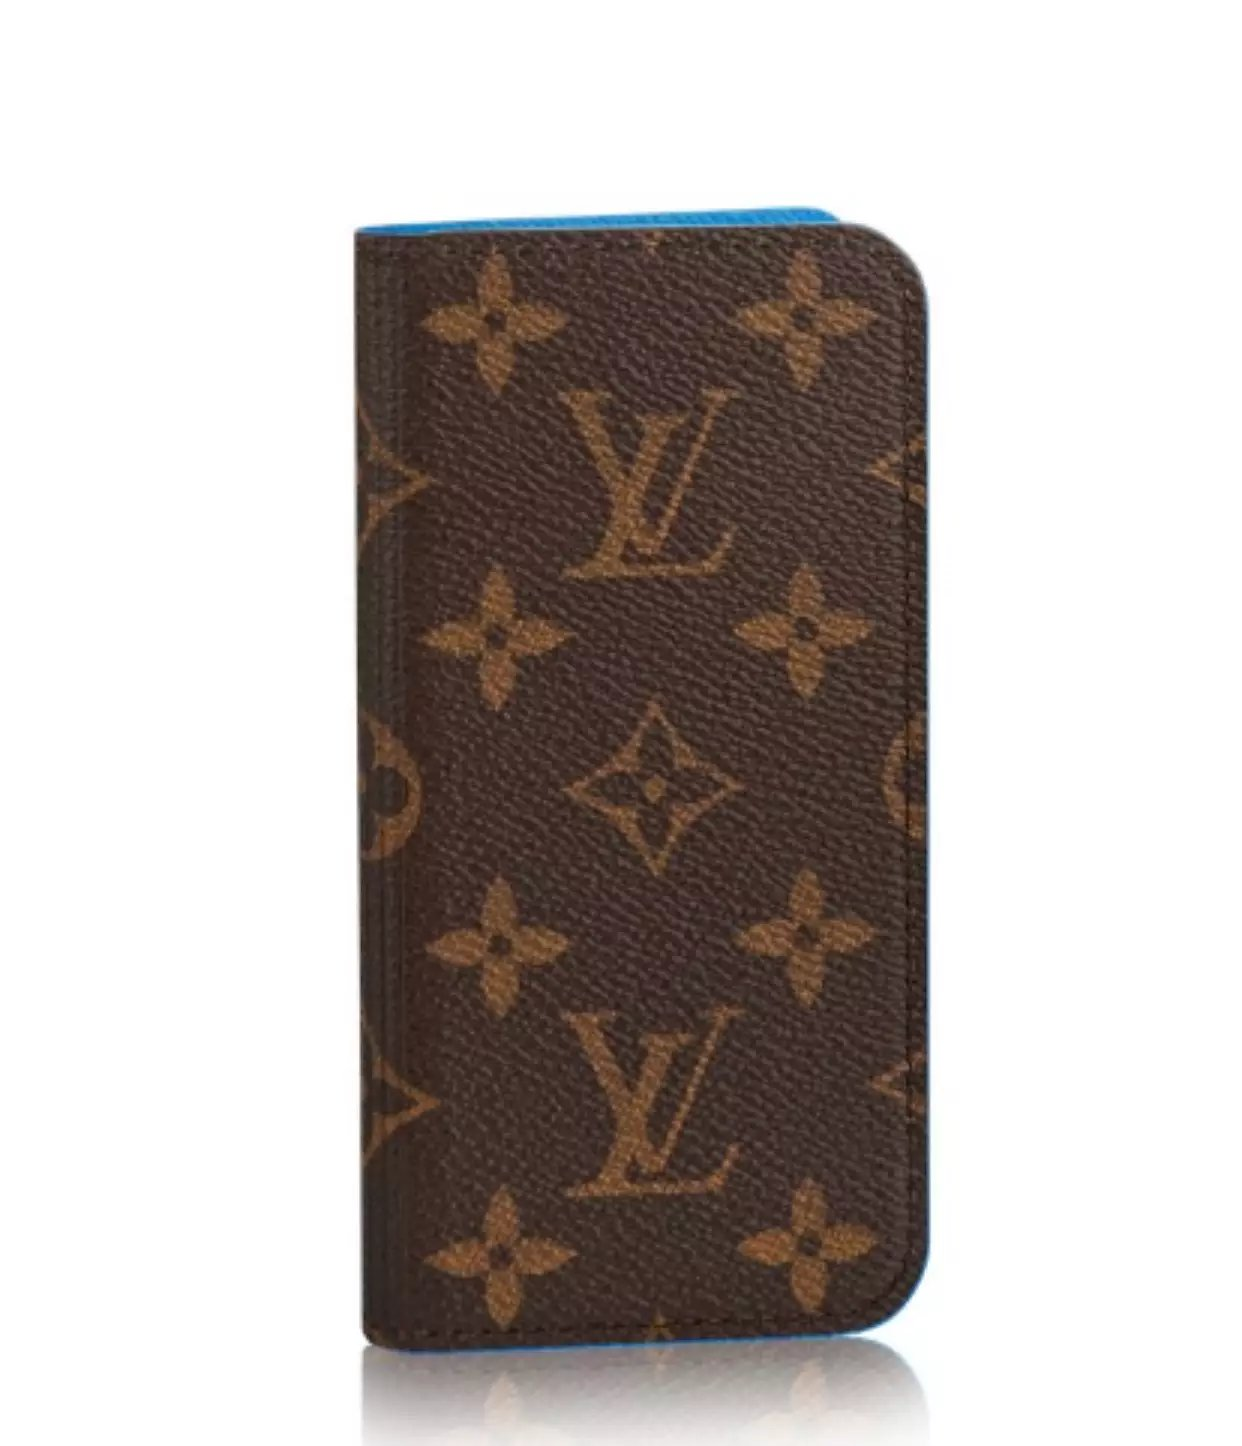 iphone case selber machen iphone hülle bedrucken Louis Vuitton iphone 8 Plus hüllen handyhülle iphone 8 Plus c iphone 8 Plus aufklappbare hülle iphone s 8 Plus hülle handyhüllen 8 Pluslbst bedrucken iphone 8 Plus hardca8 Plus iphone 8 Plus